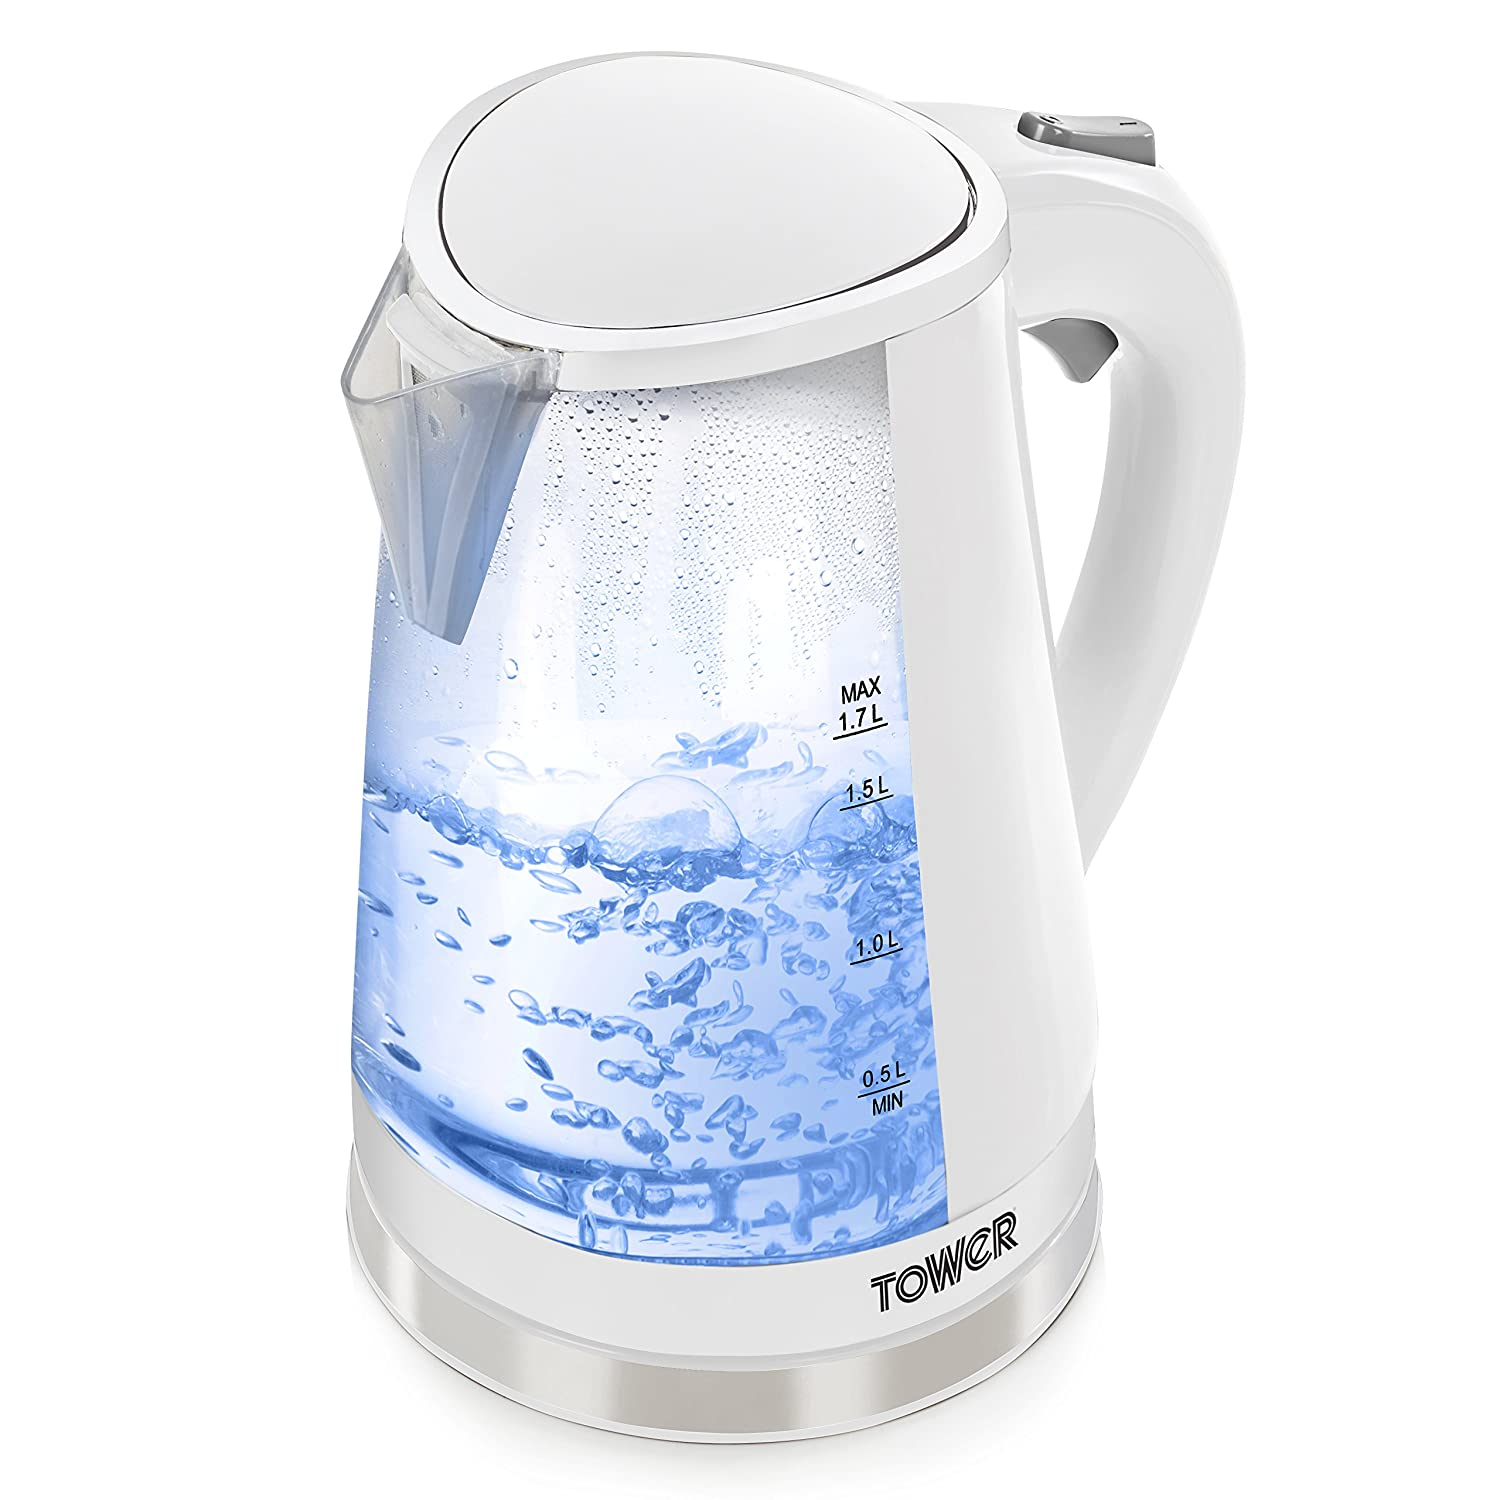 Tower T10012 Colour Changing LED Jug Kettle, 2200 W, 1.7 Litre, Black